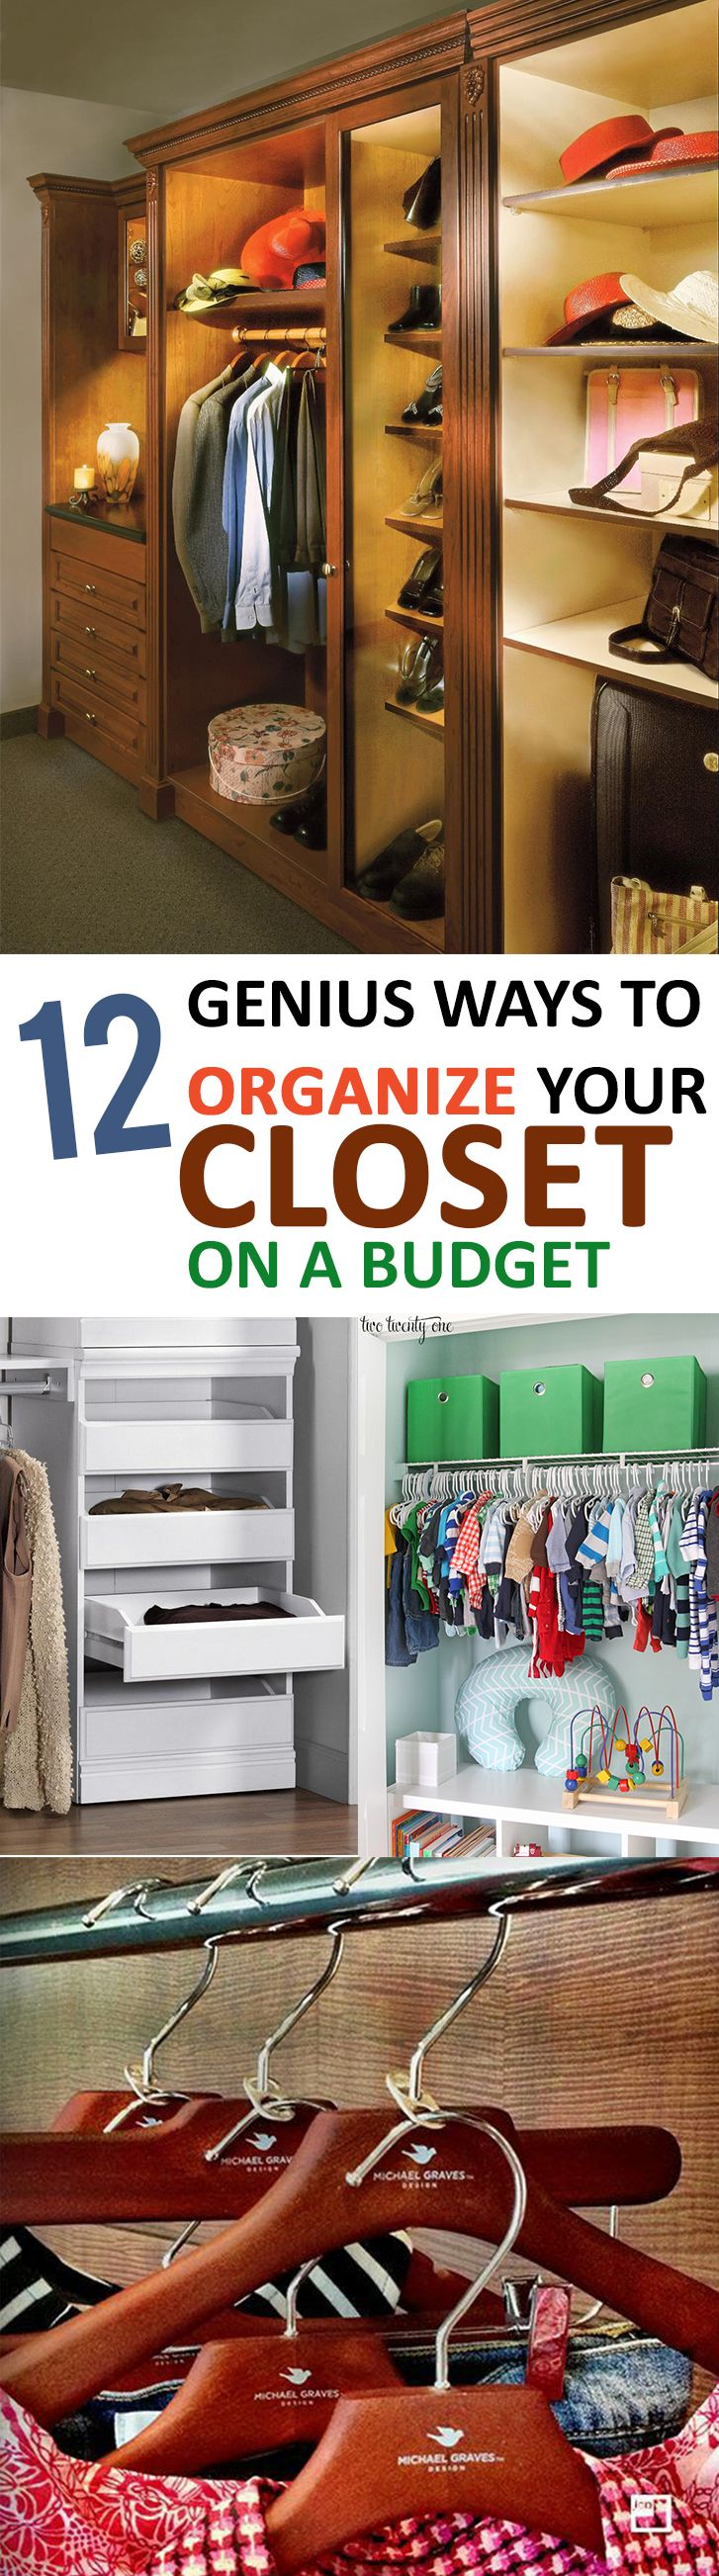 Genius Ways To Organize Your Closet On A Budget Organizing - 20 genius life hacks for anyone on a tight budget